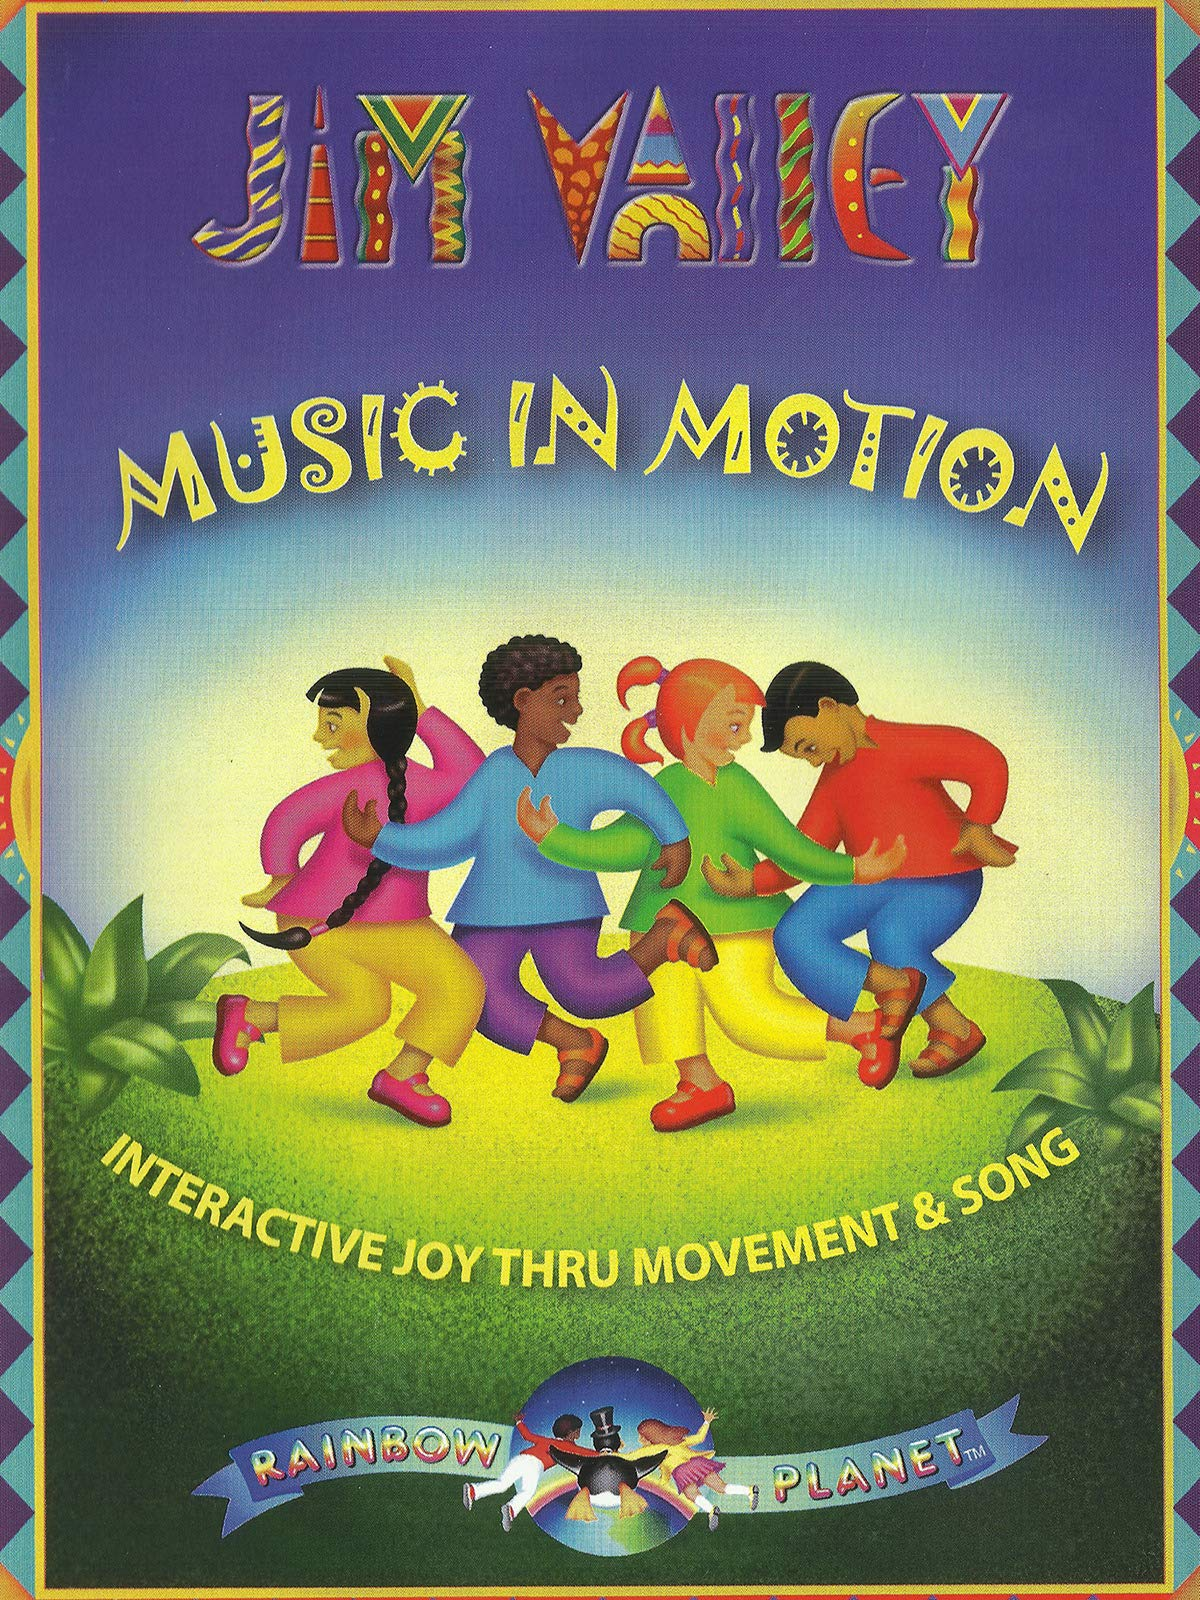 Jim Valley - Music In Motion on Amazon Prime Instant Video UK